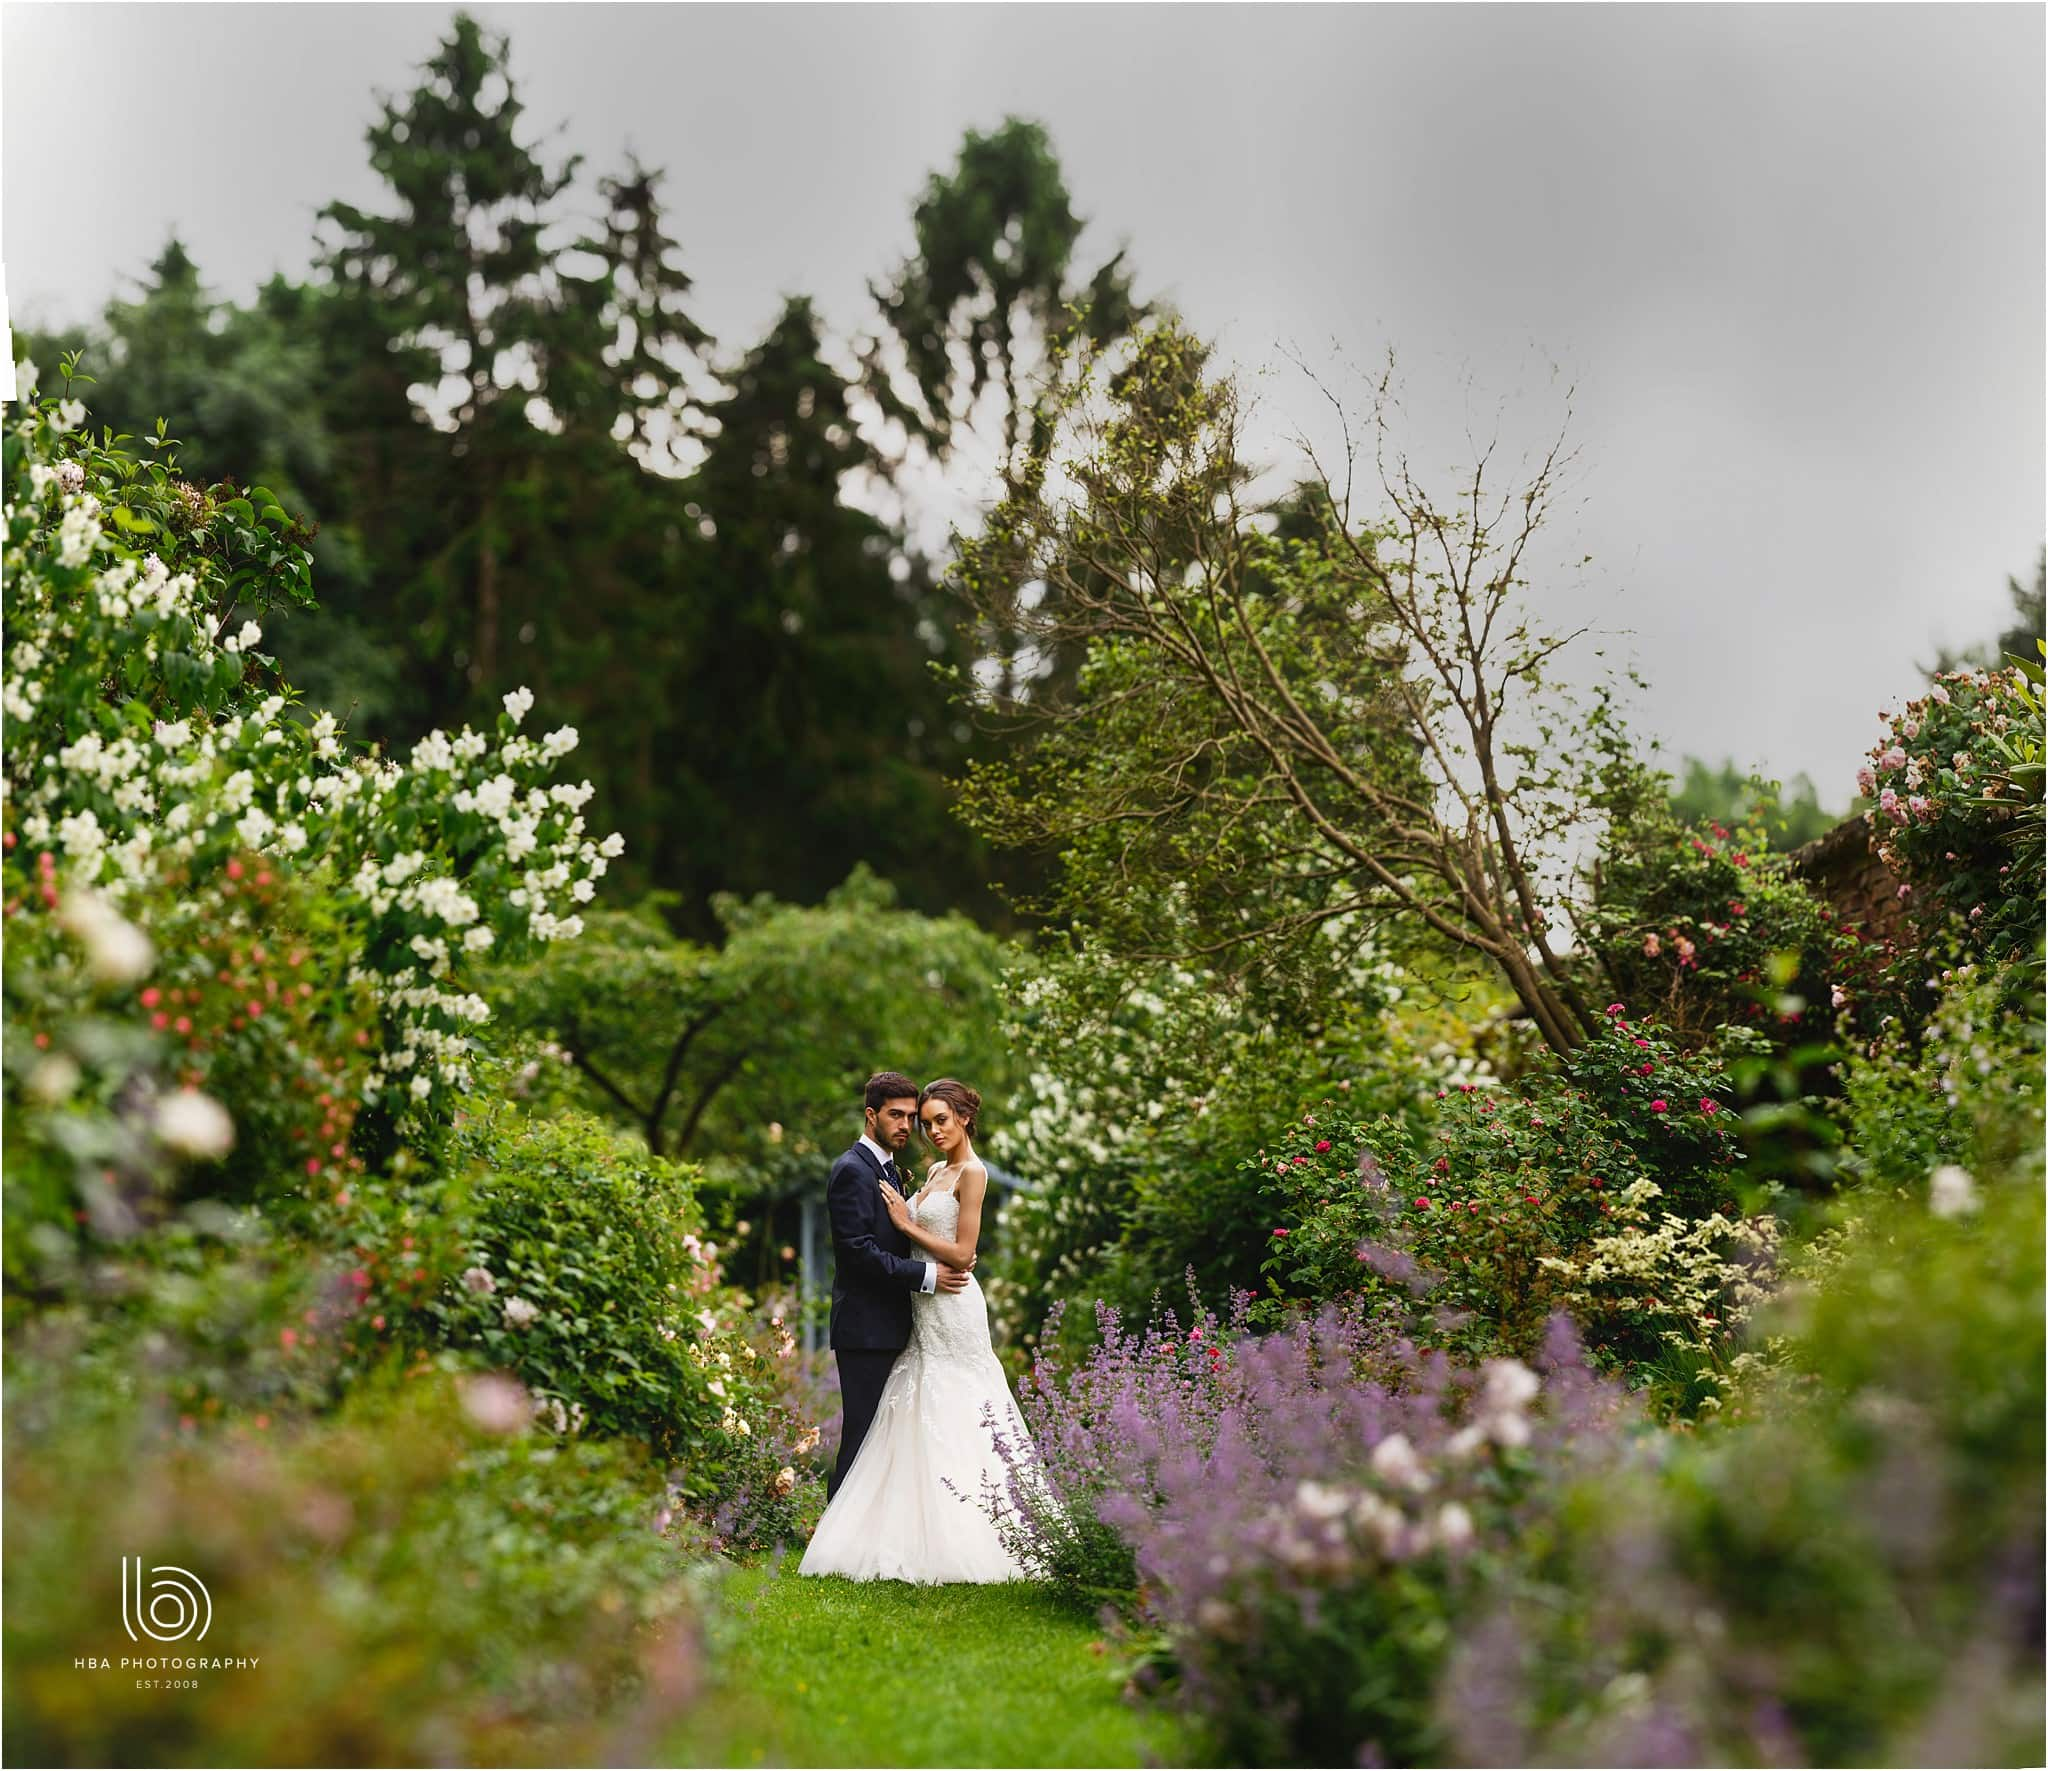 the bride and groom together surrounded by flowers